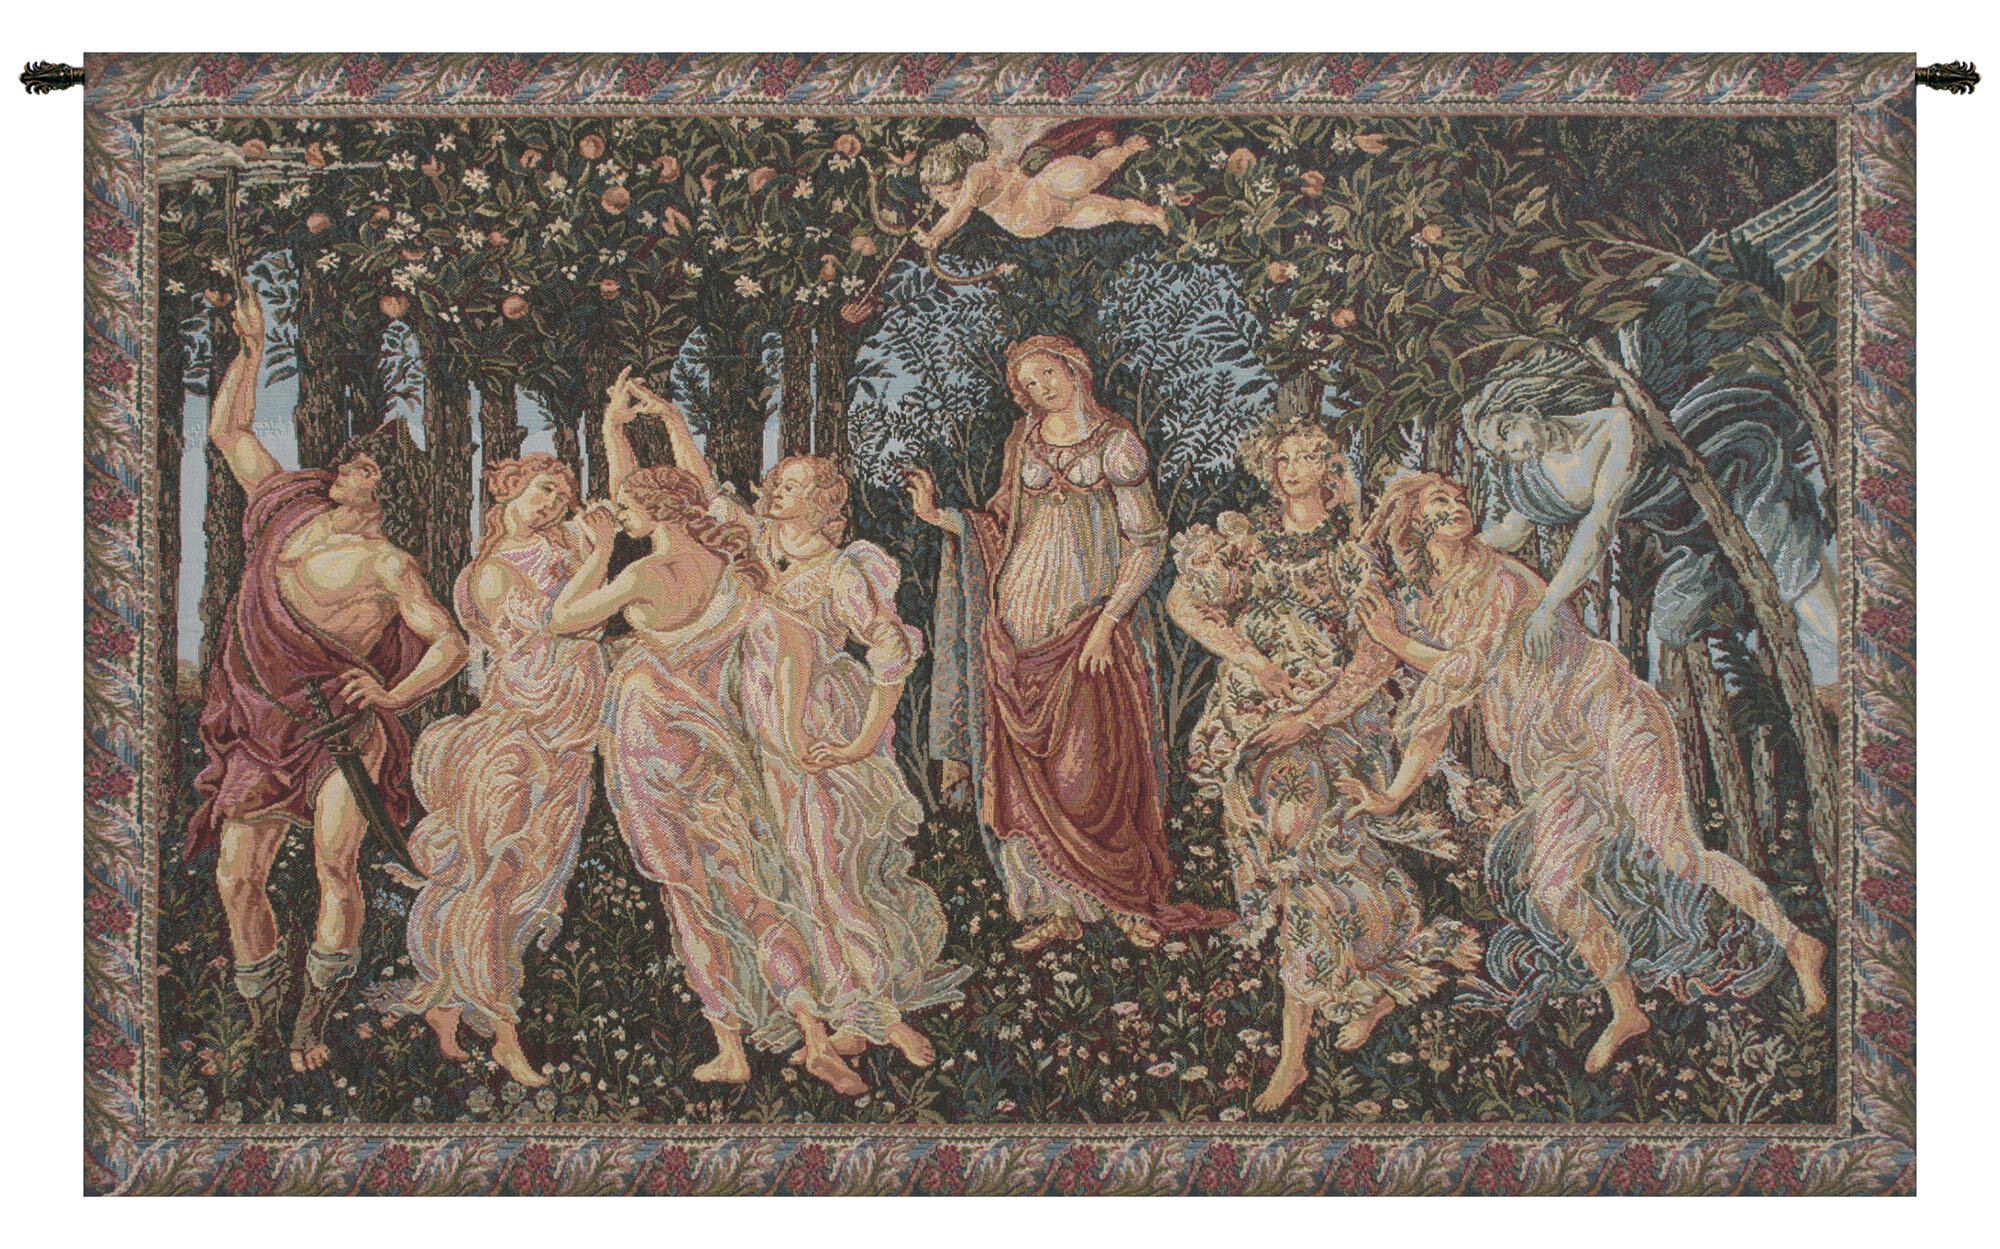 Allegory Of Spring European Tapestry With Most Popular Blended Fabric Mucha Autumn European Wall Hangings (View 3 of 20)